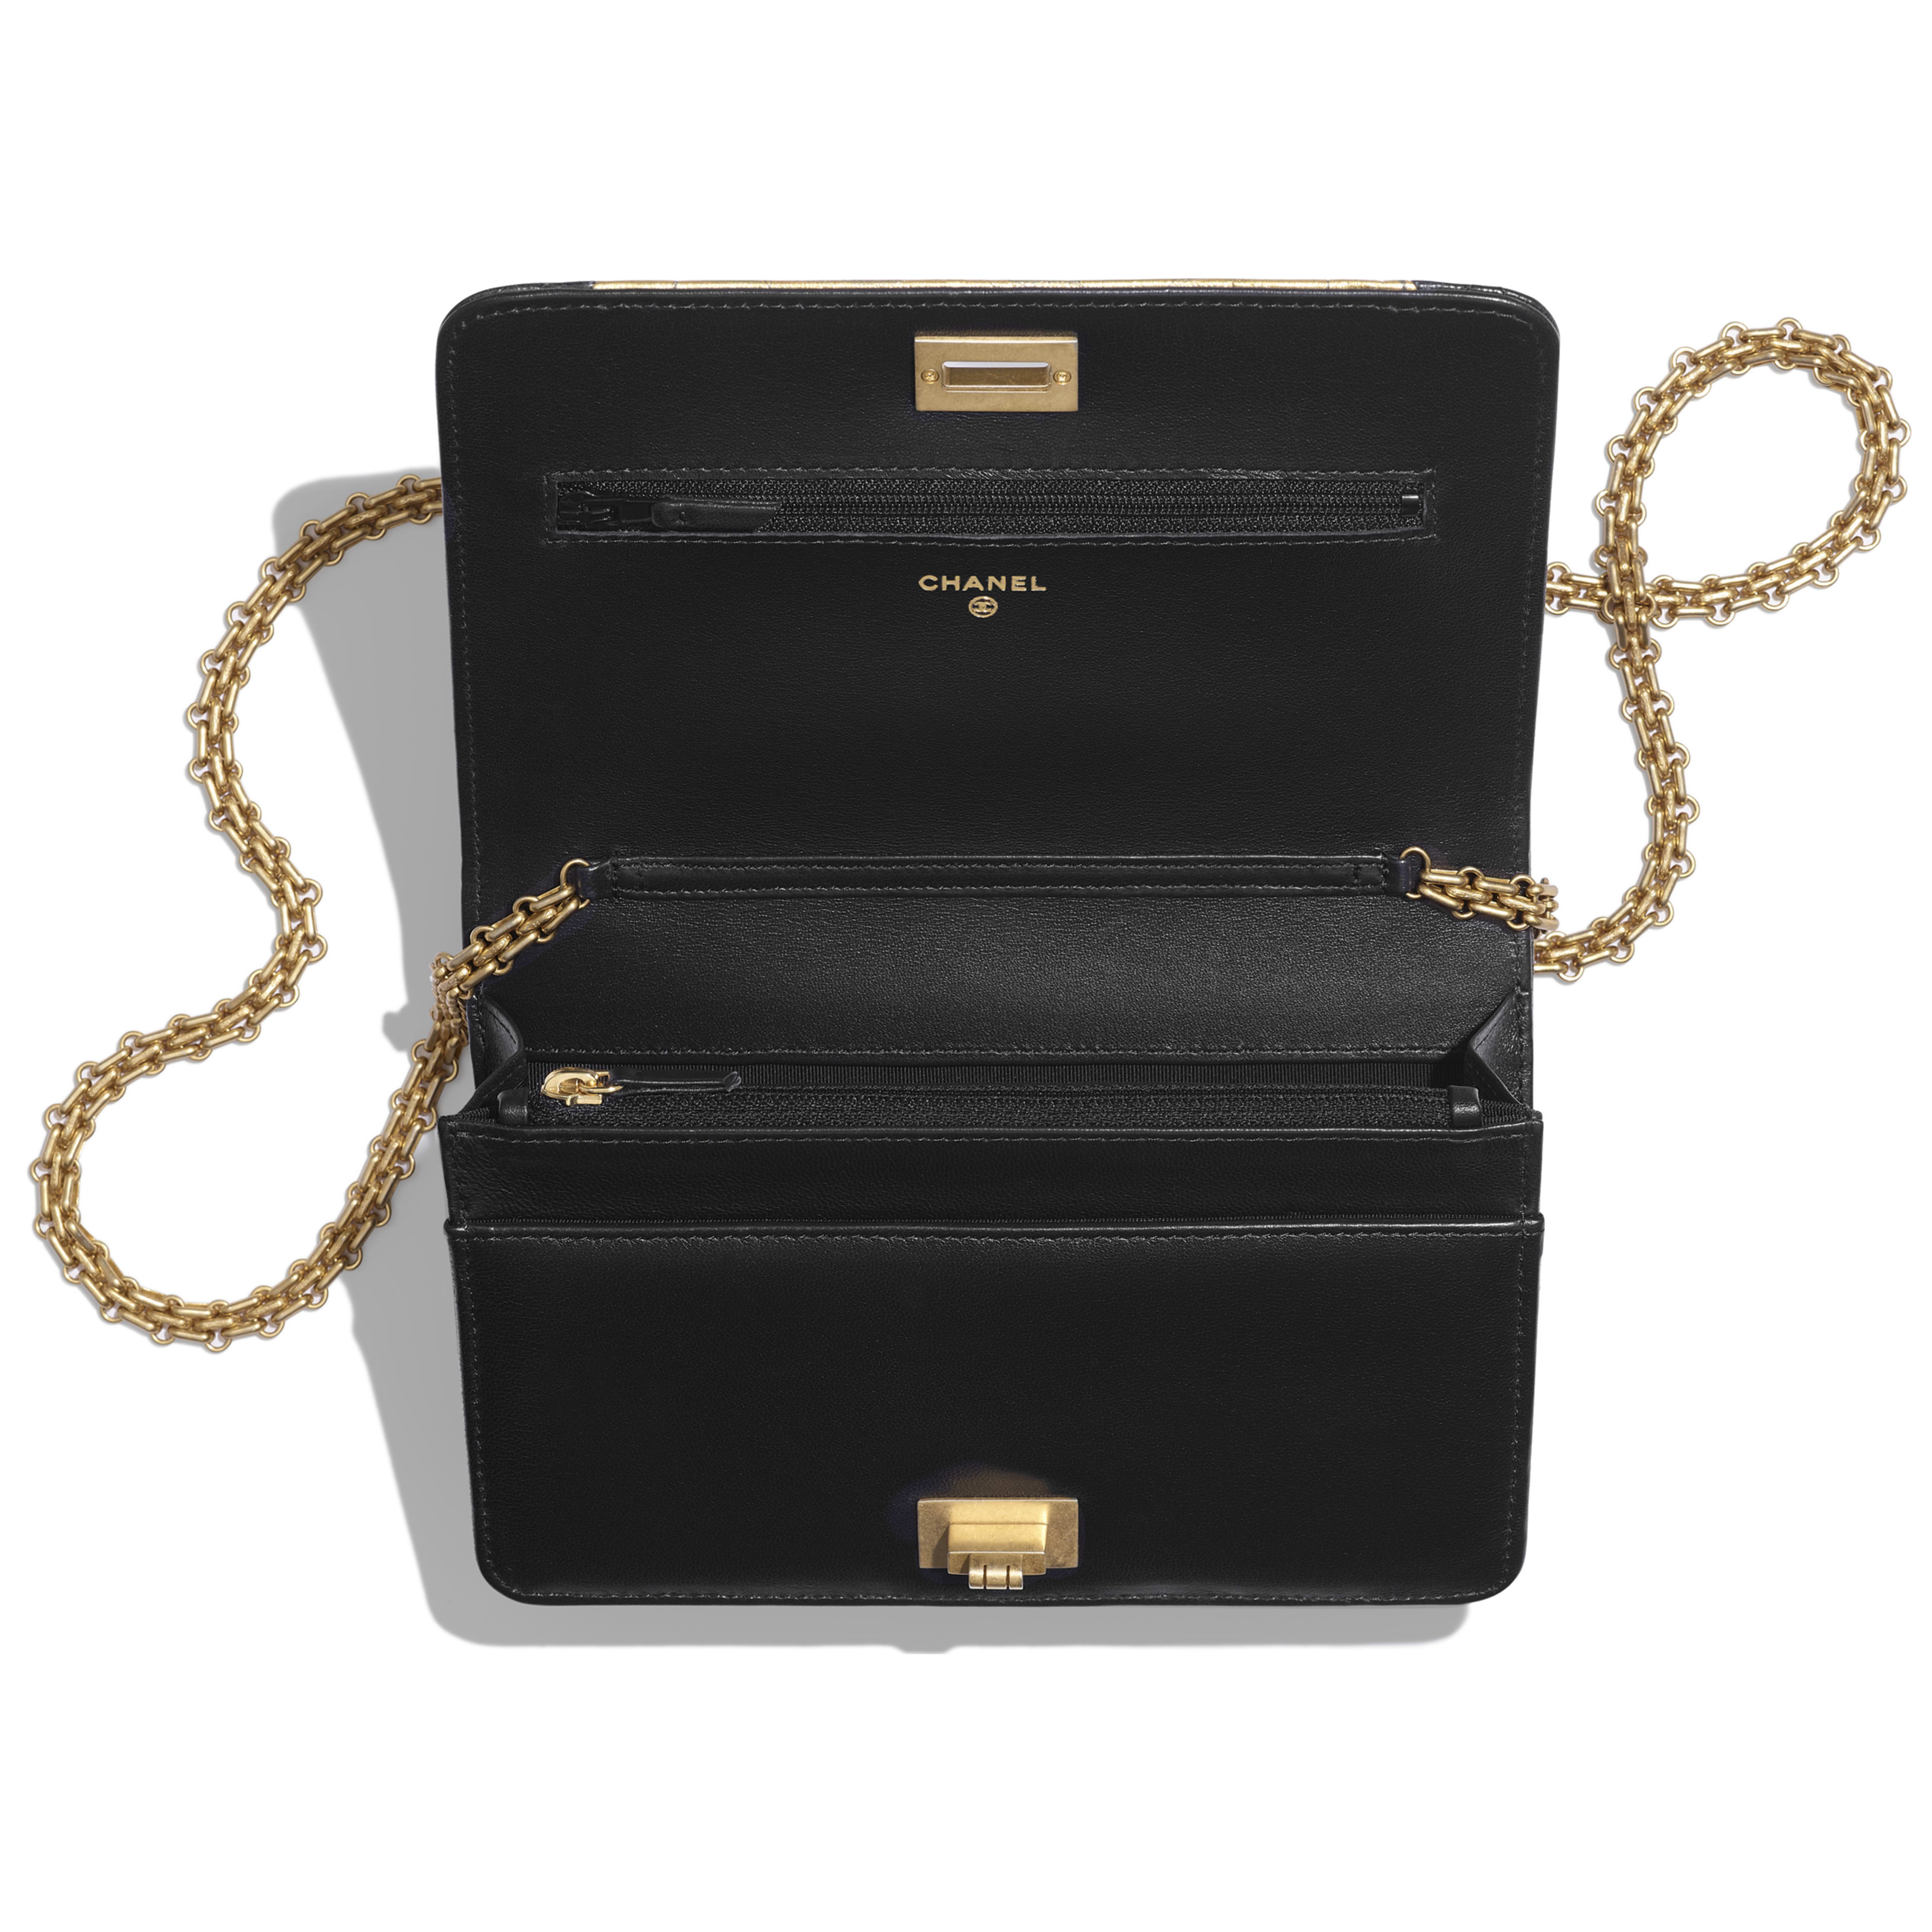 Wallet on Chain - Black & Gold - Lambskin, Crocodile Embossed Calfskin & Gold-Tone Metal - Other view - see full sized version